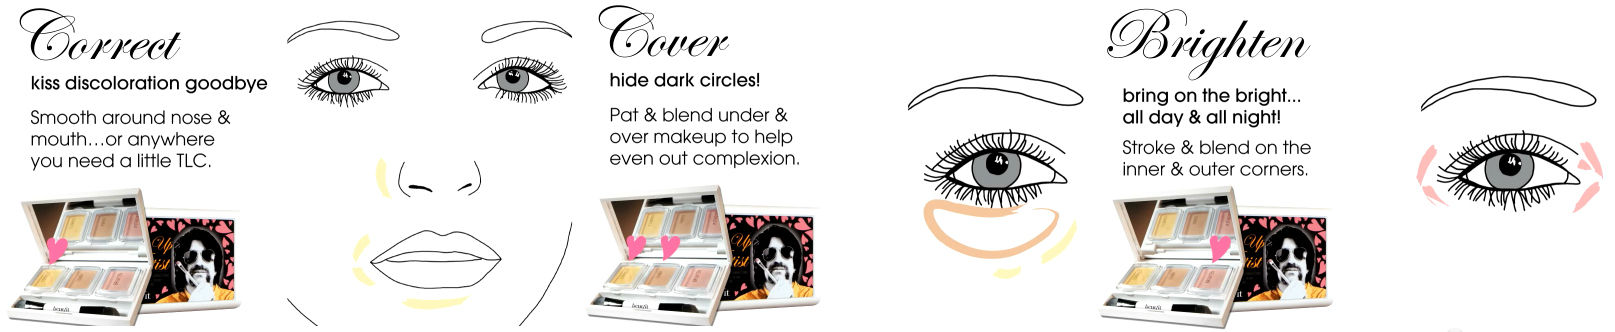 Benefit-The-Perk-Up-Artist-Makeup-Palette-instructions